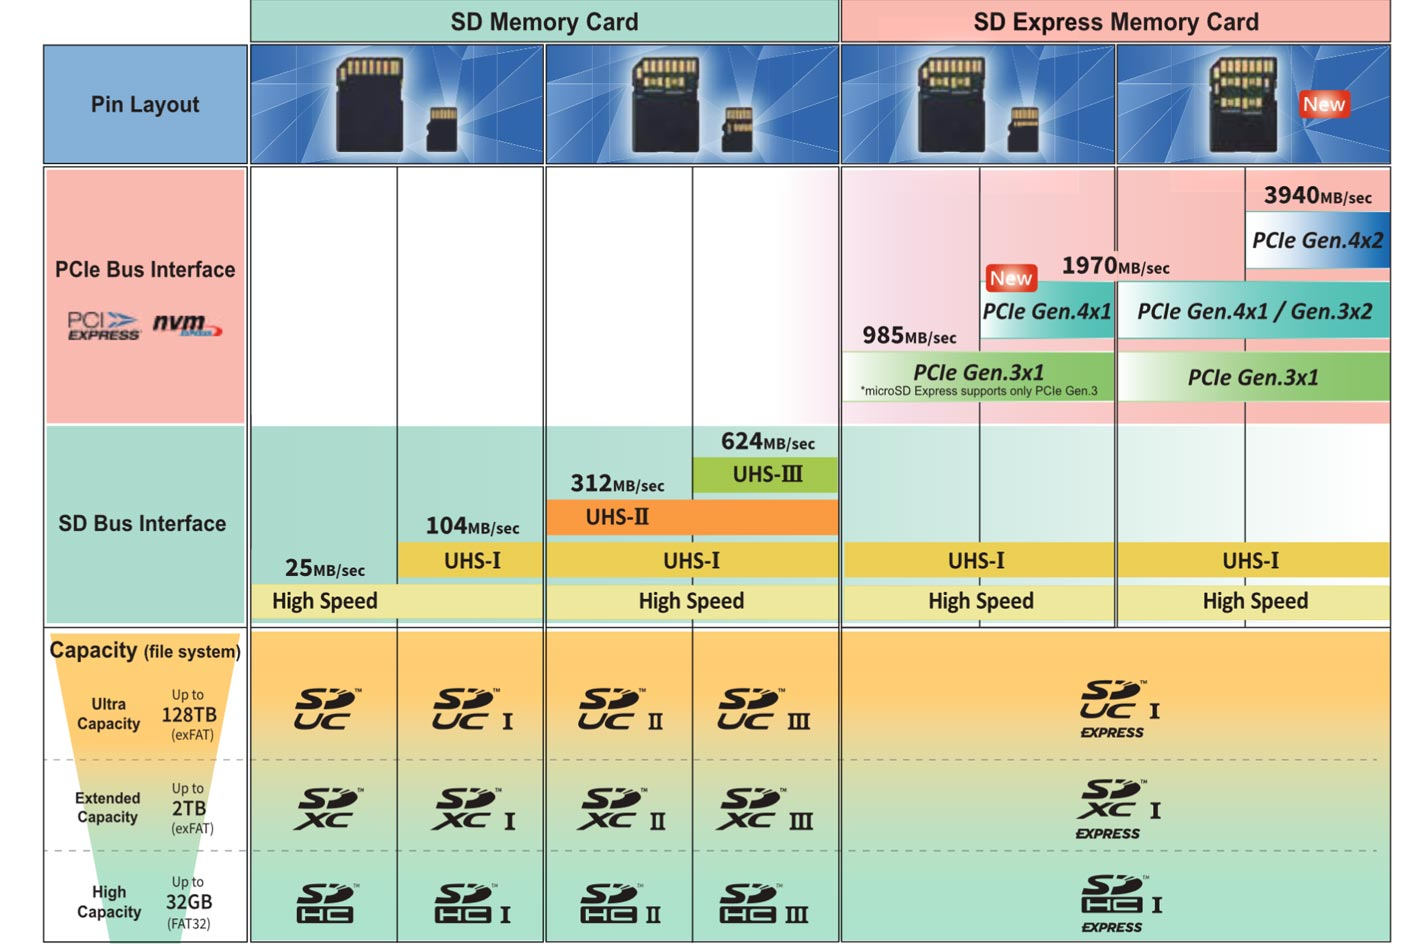 V90 memory cards: your choice for 4K video and beyond